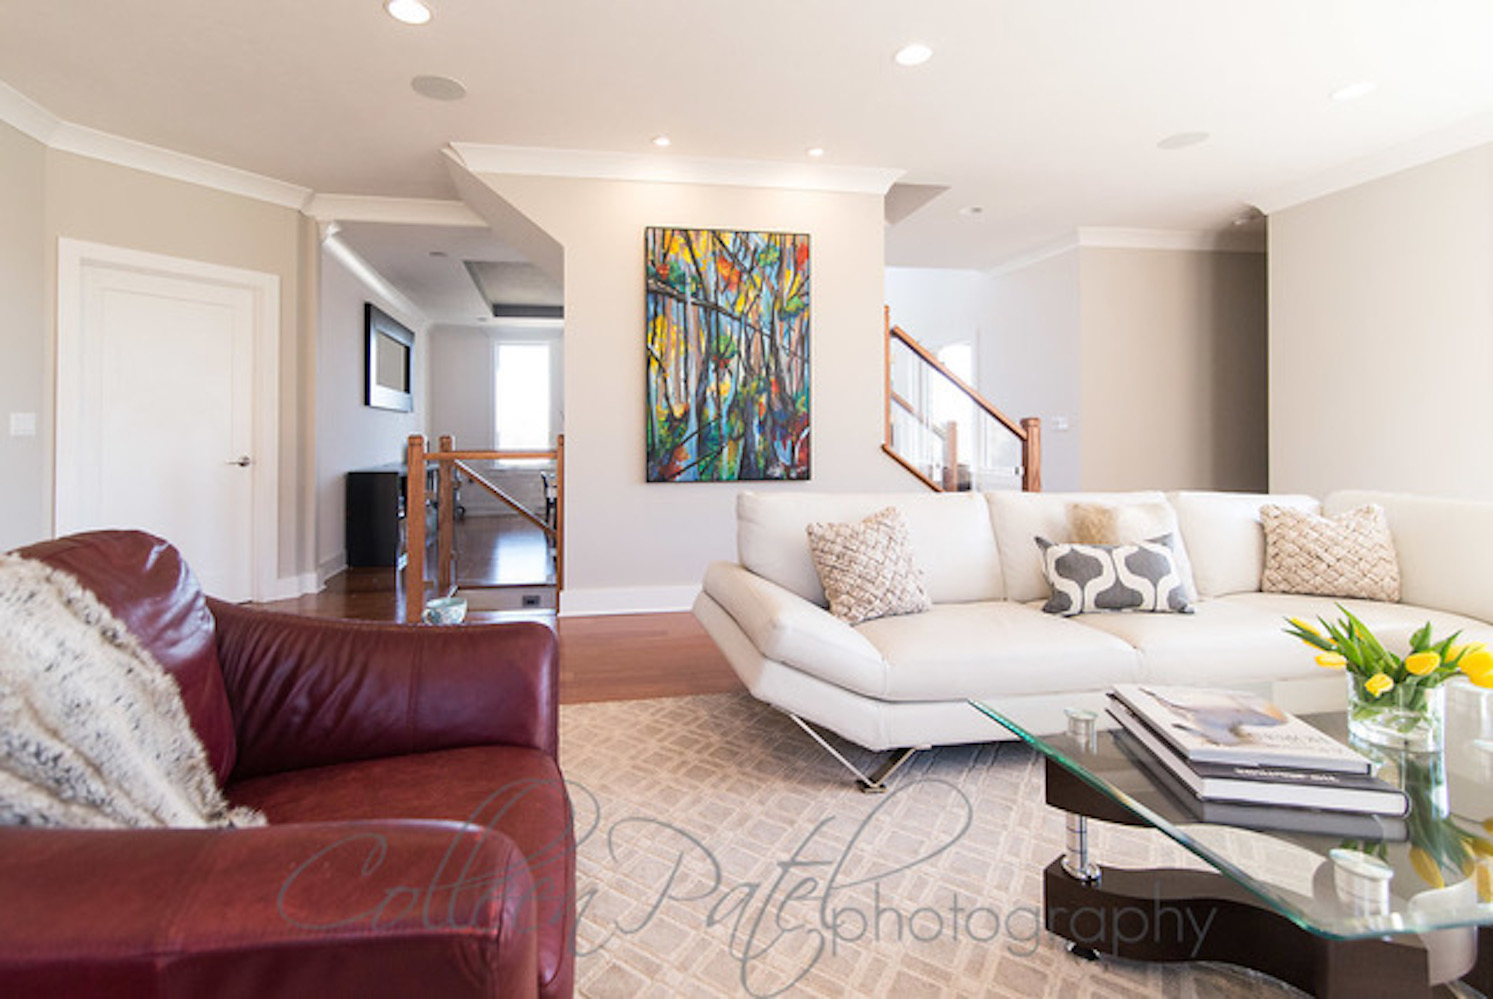 Artwork created by SASLLC owner and artist Samantha Silvas. Custom framing and canvas by Heather Heitzenrater. Photography by Colleen Patel. Interior designer: Kimberly Popp.